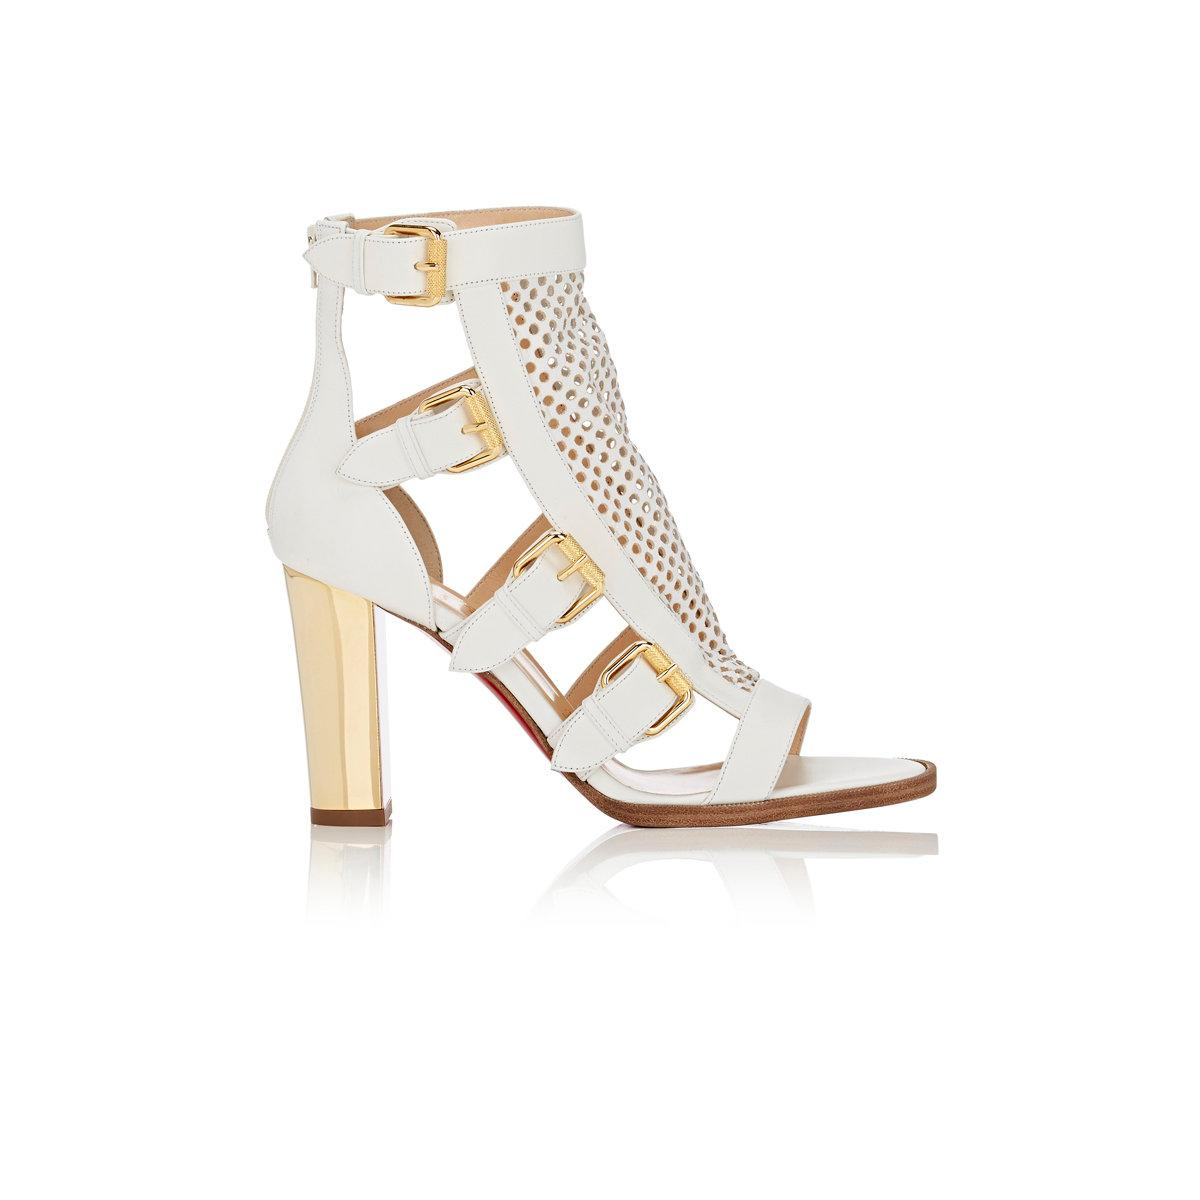 74060a6cad1 Lyst - Christian Louboutin Fencing Leather Gladiator Sandals in White